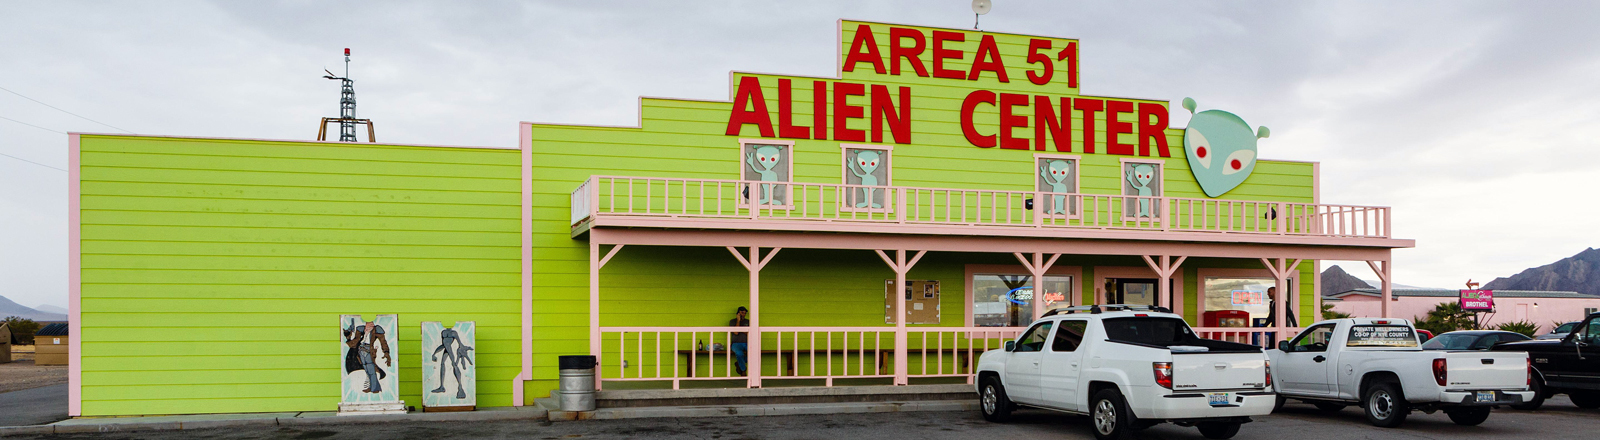 USA, United States of America, Nevada, Amargosa Valley, 28.10.2016: Area 51 Alien Travel Center, Restaurent, Shop und Tankstelle am US Highway 95 - inmitten des Nirgendwo